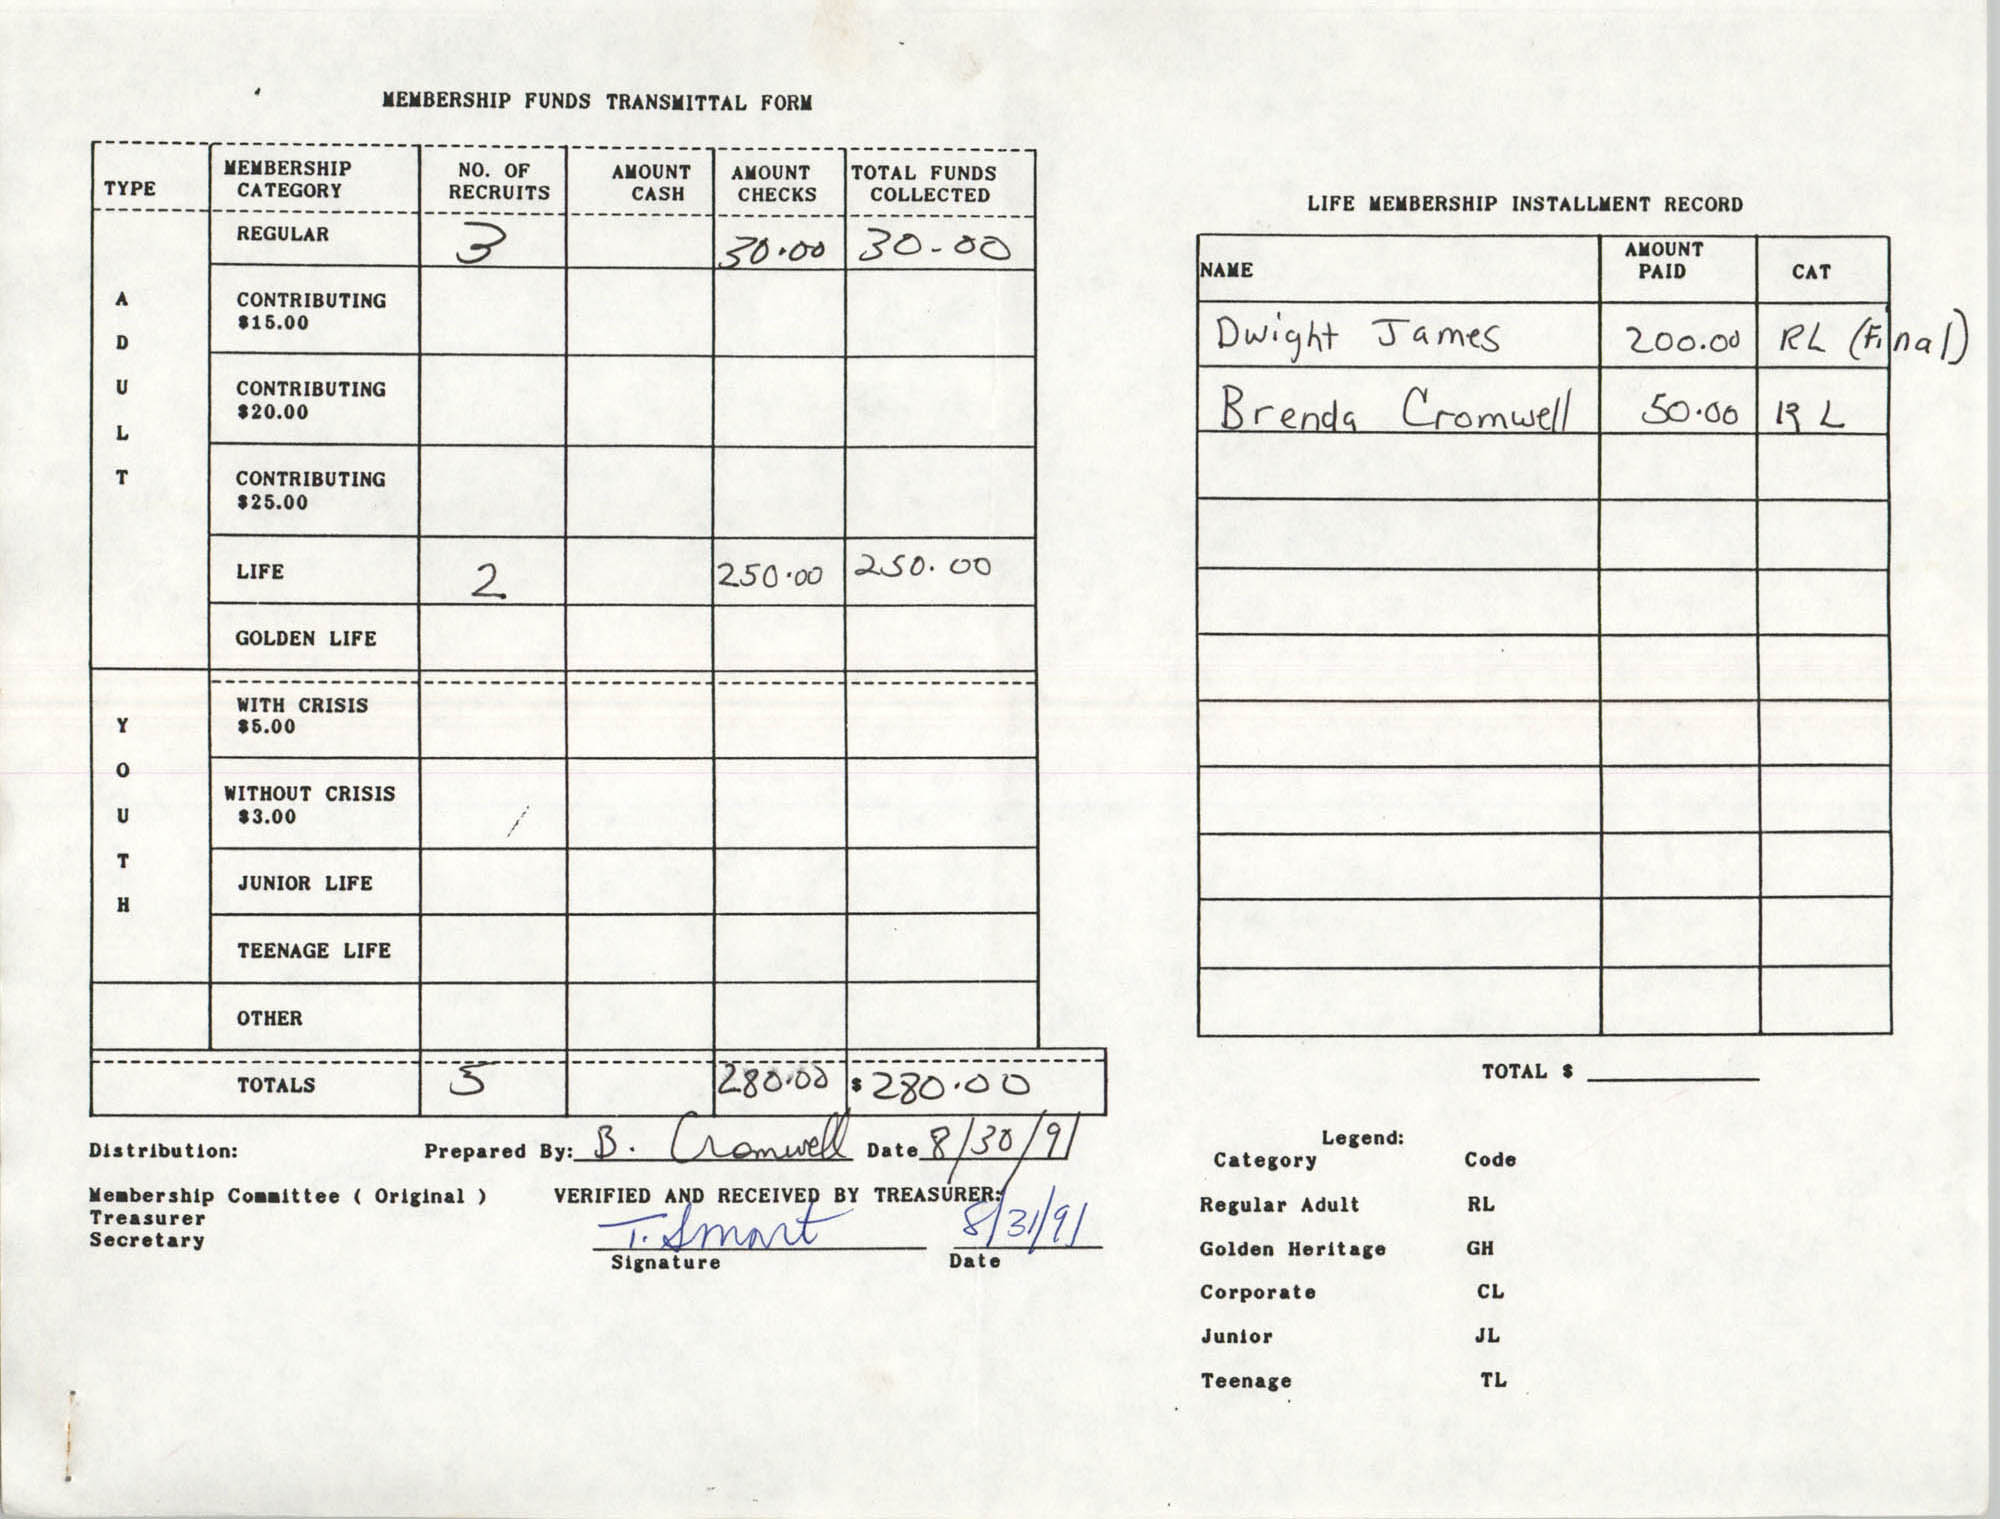 Charleston Branch of the NAACP Funds Transmittal Forms, September 1991, Page 1